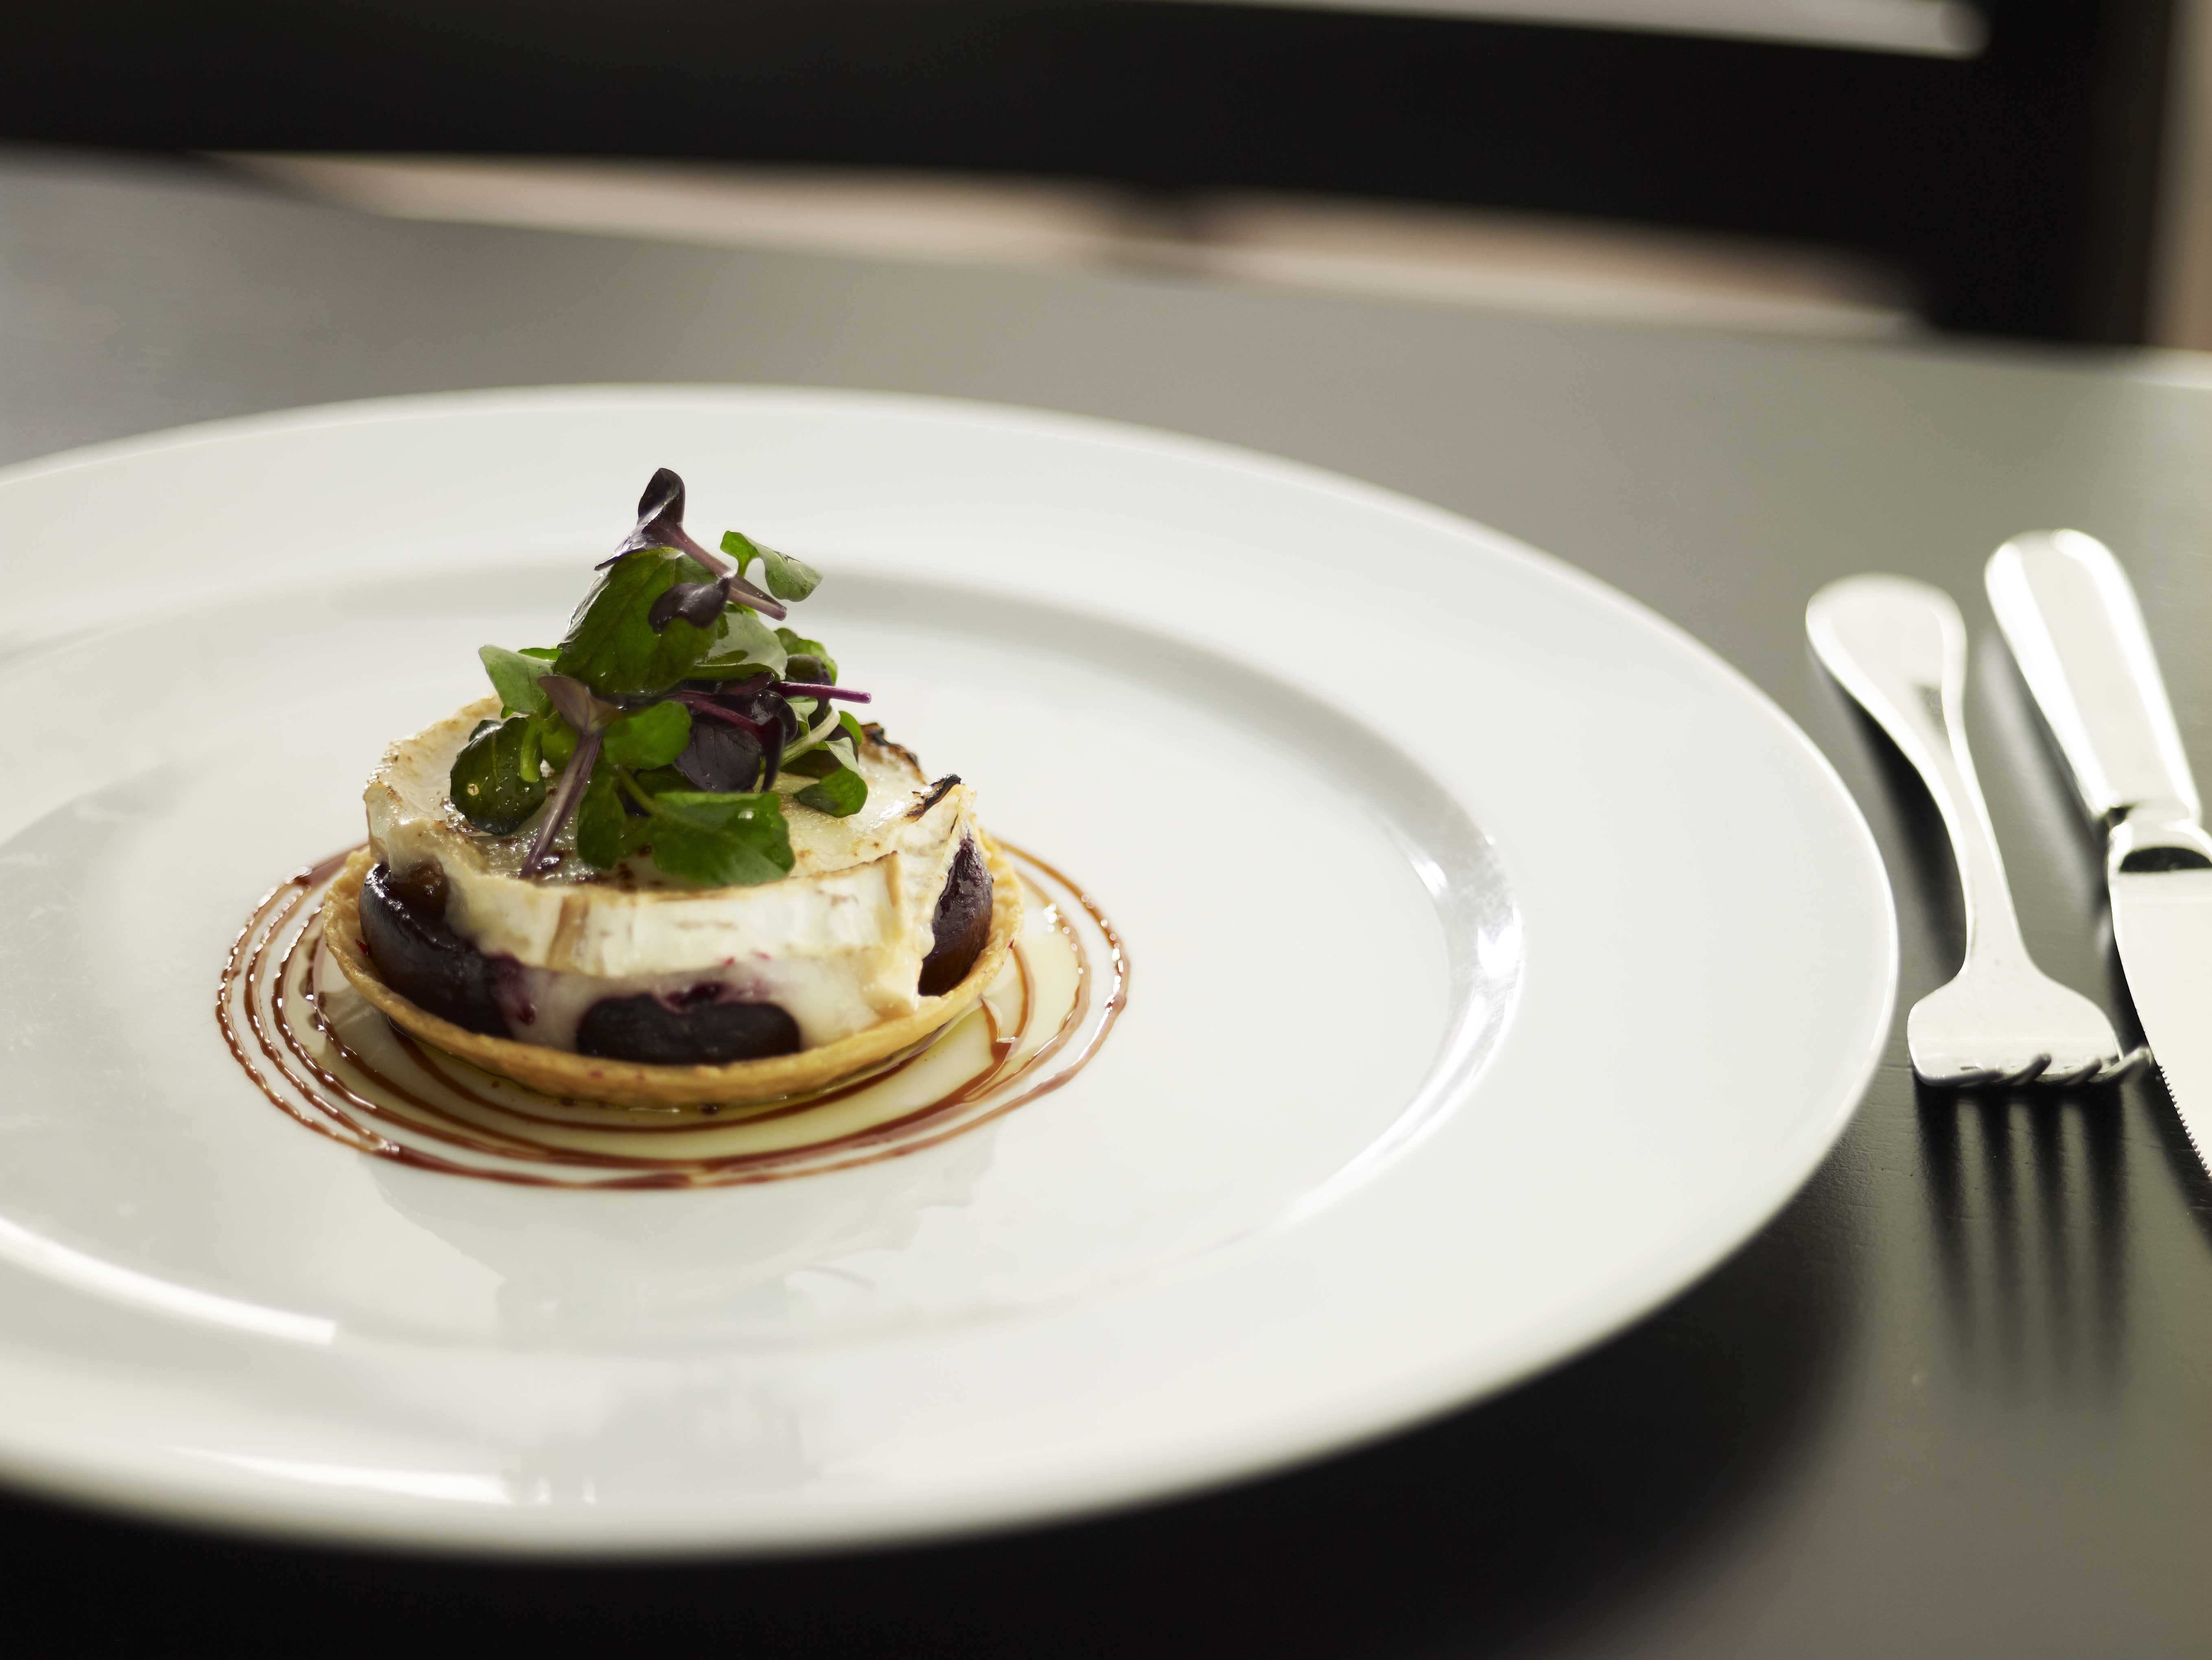 cafe sydney u2019s beetroot tart french for foodies rachel khoo goats cheese prune cake rachel allen goats cheese risotto